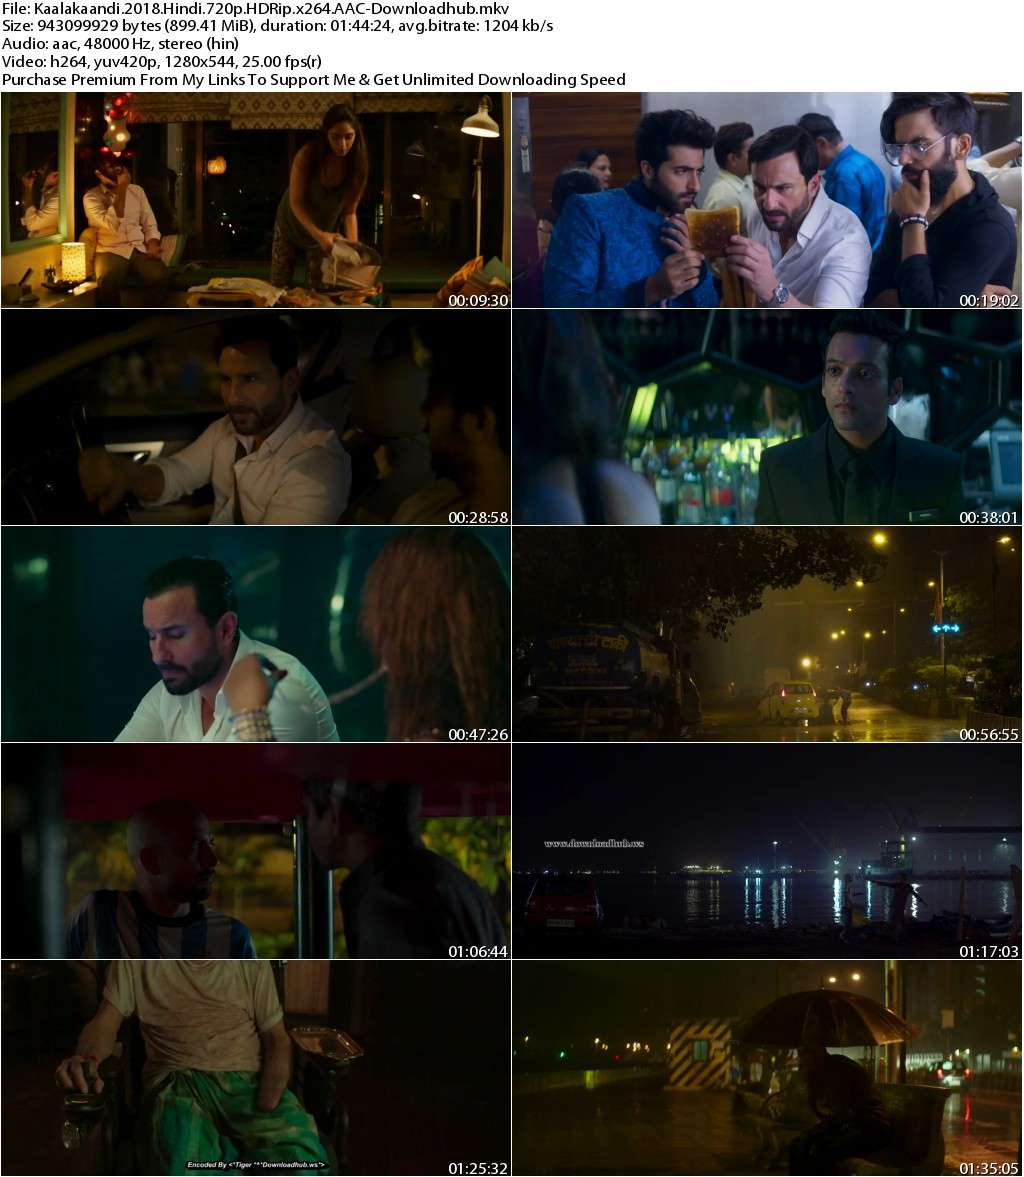 Kaalakaandi (2018) Hindi 720p HDRip x264 AAC-Downloadhub